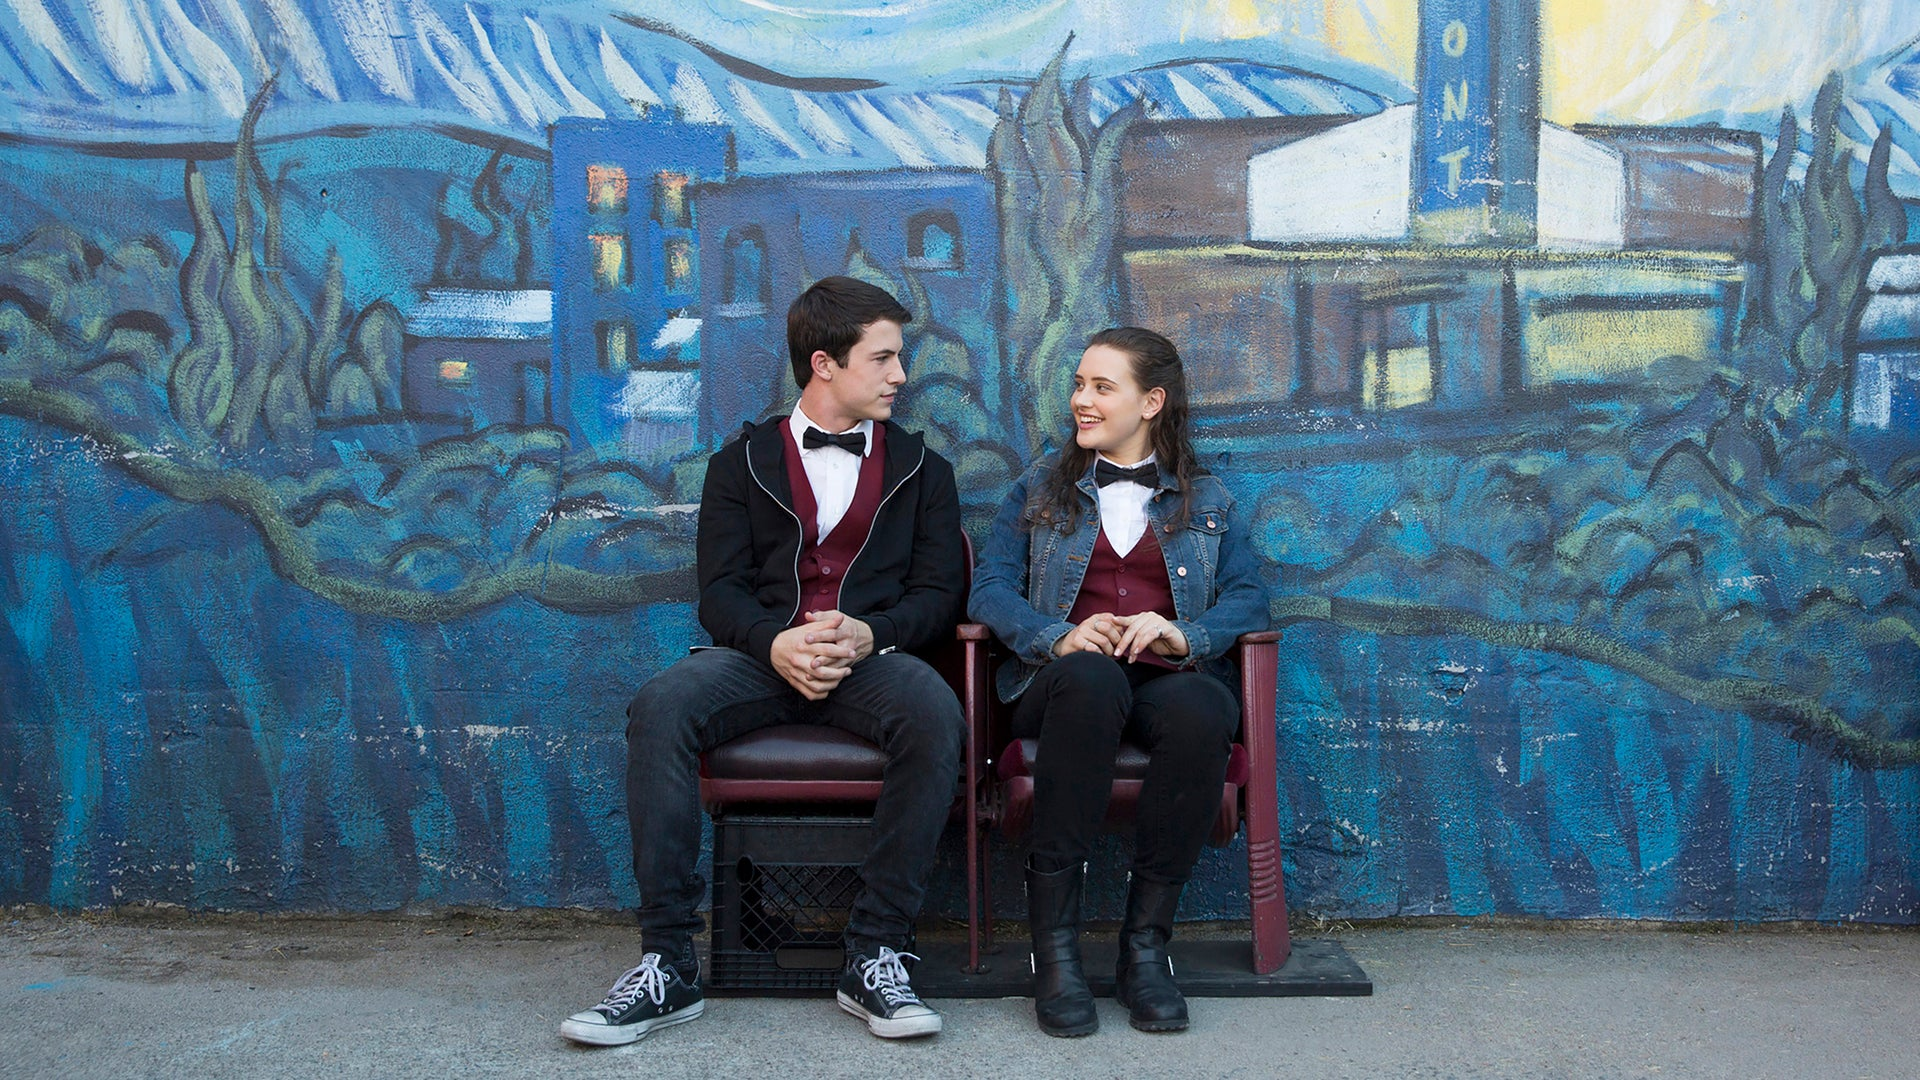 Dylan Minnette and Katherine Langford, 13 Reasons Why